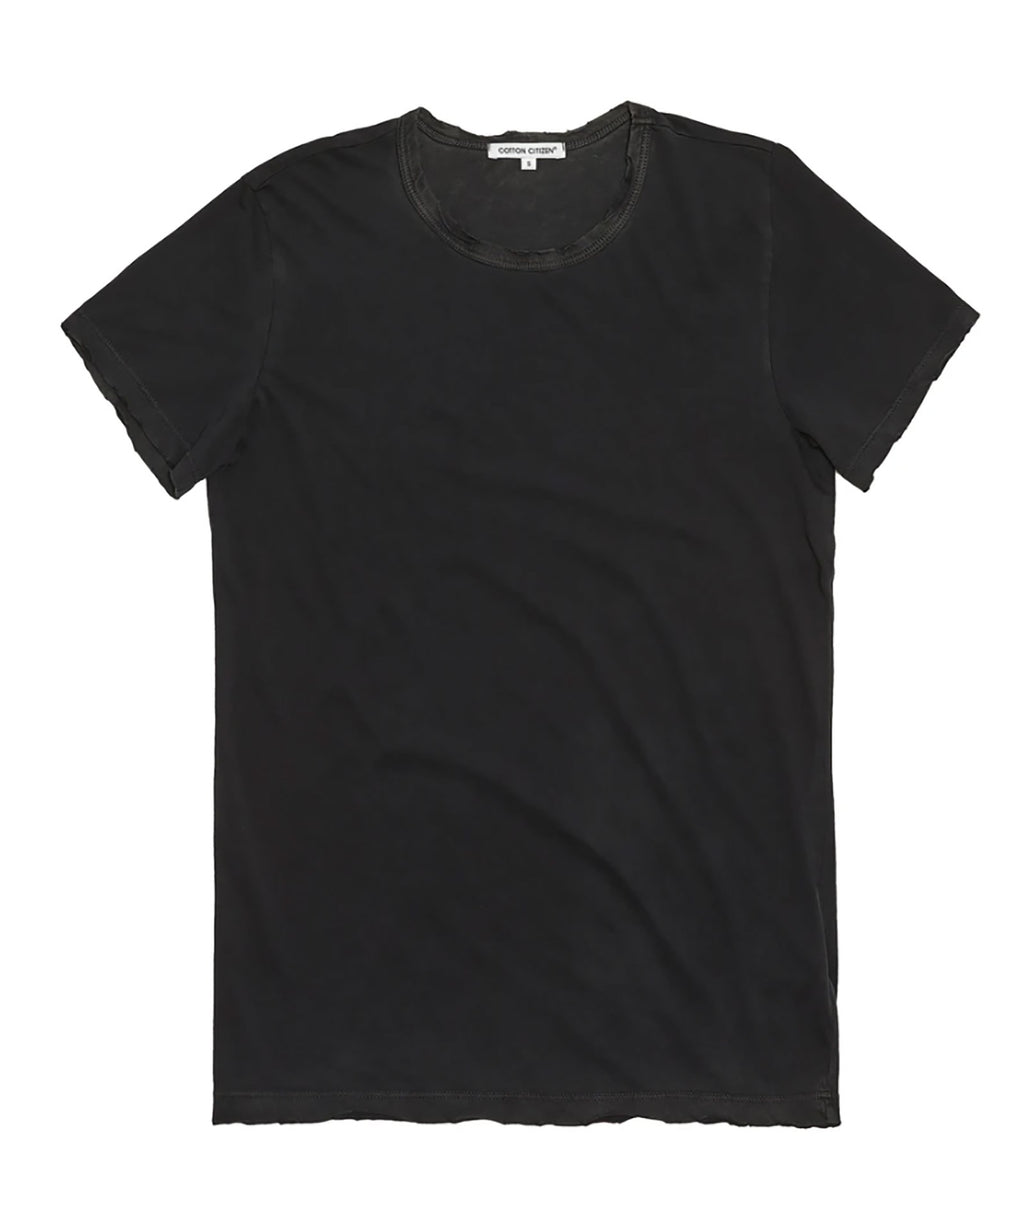 Cotton Citizen Women Vintage Black Standard Tee